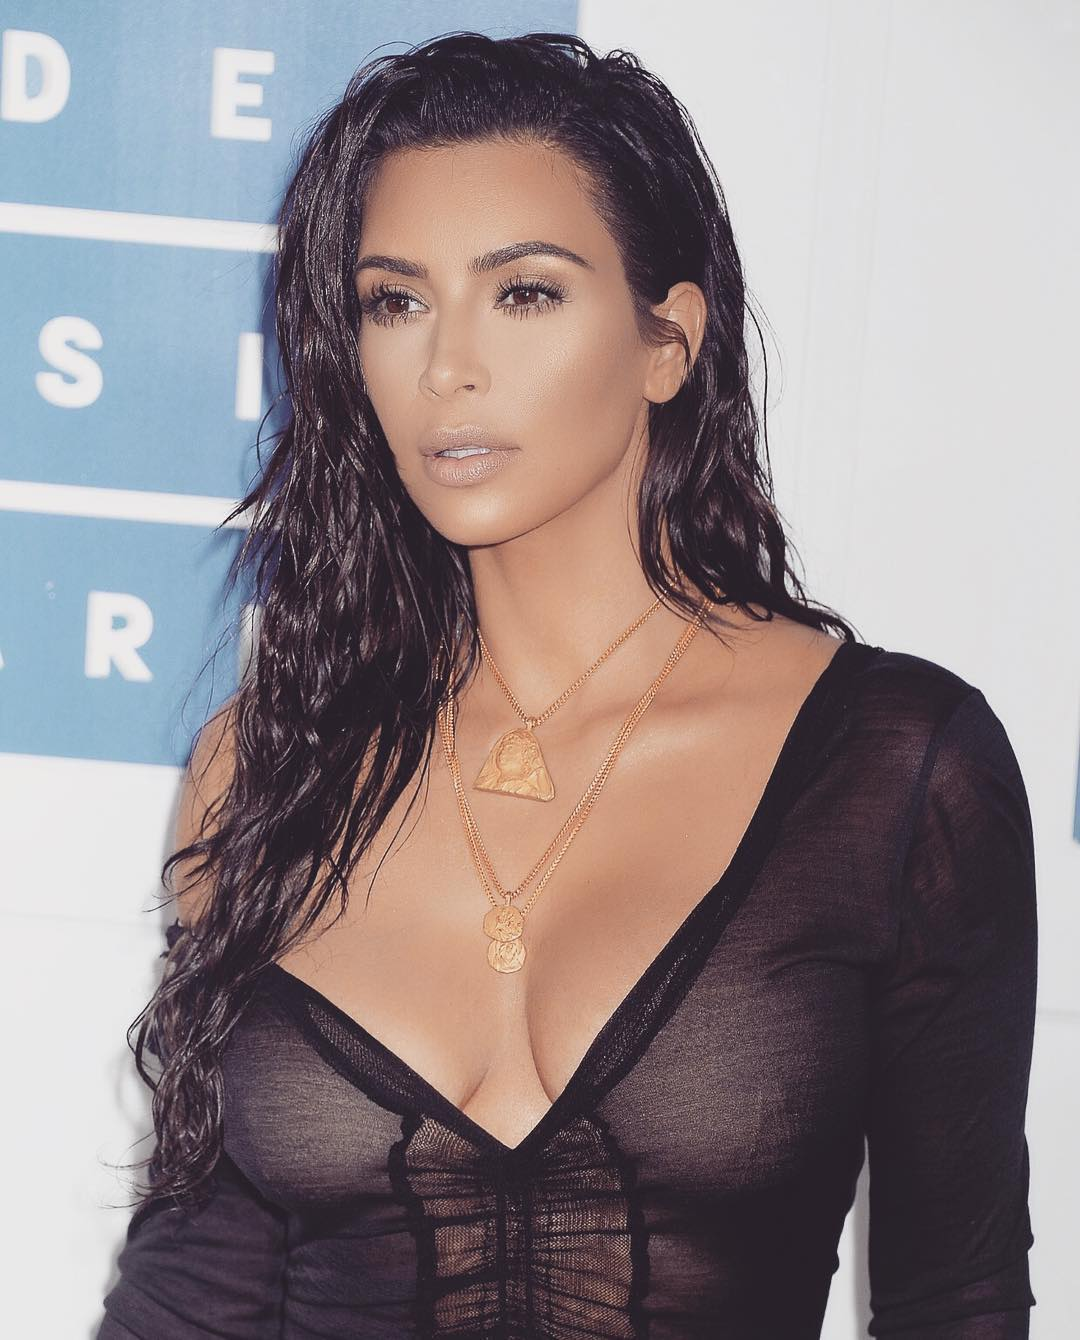 Kim Kardashian wet effect hairstyles 2017 summer